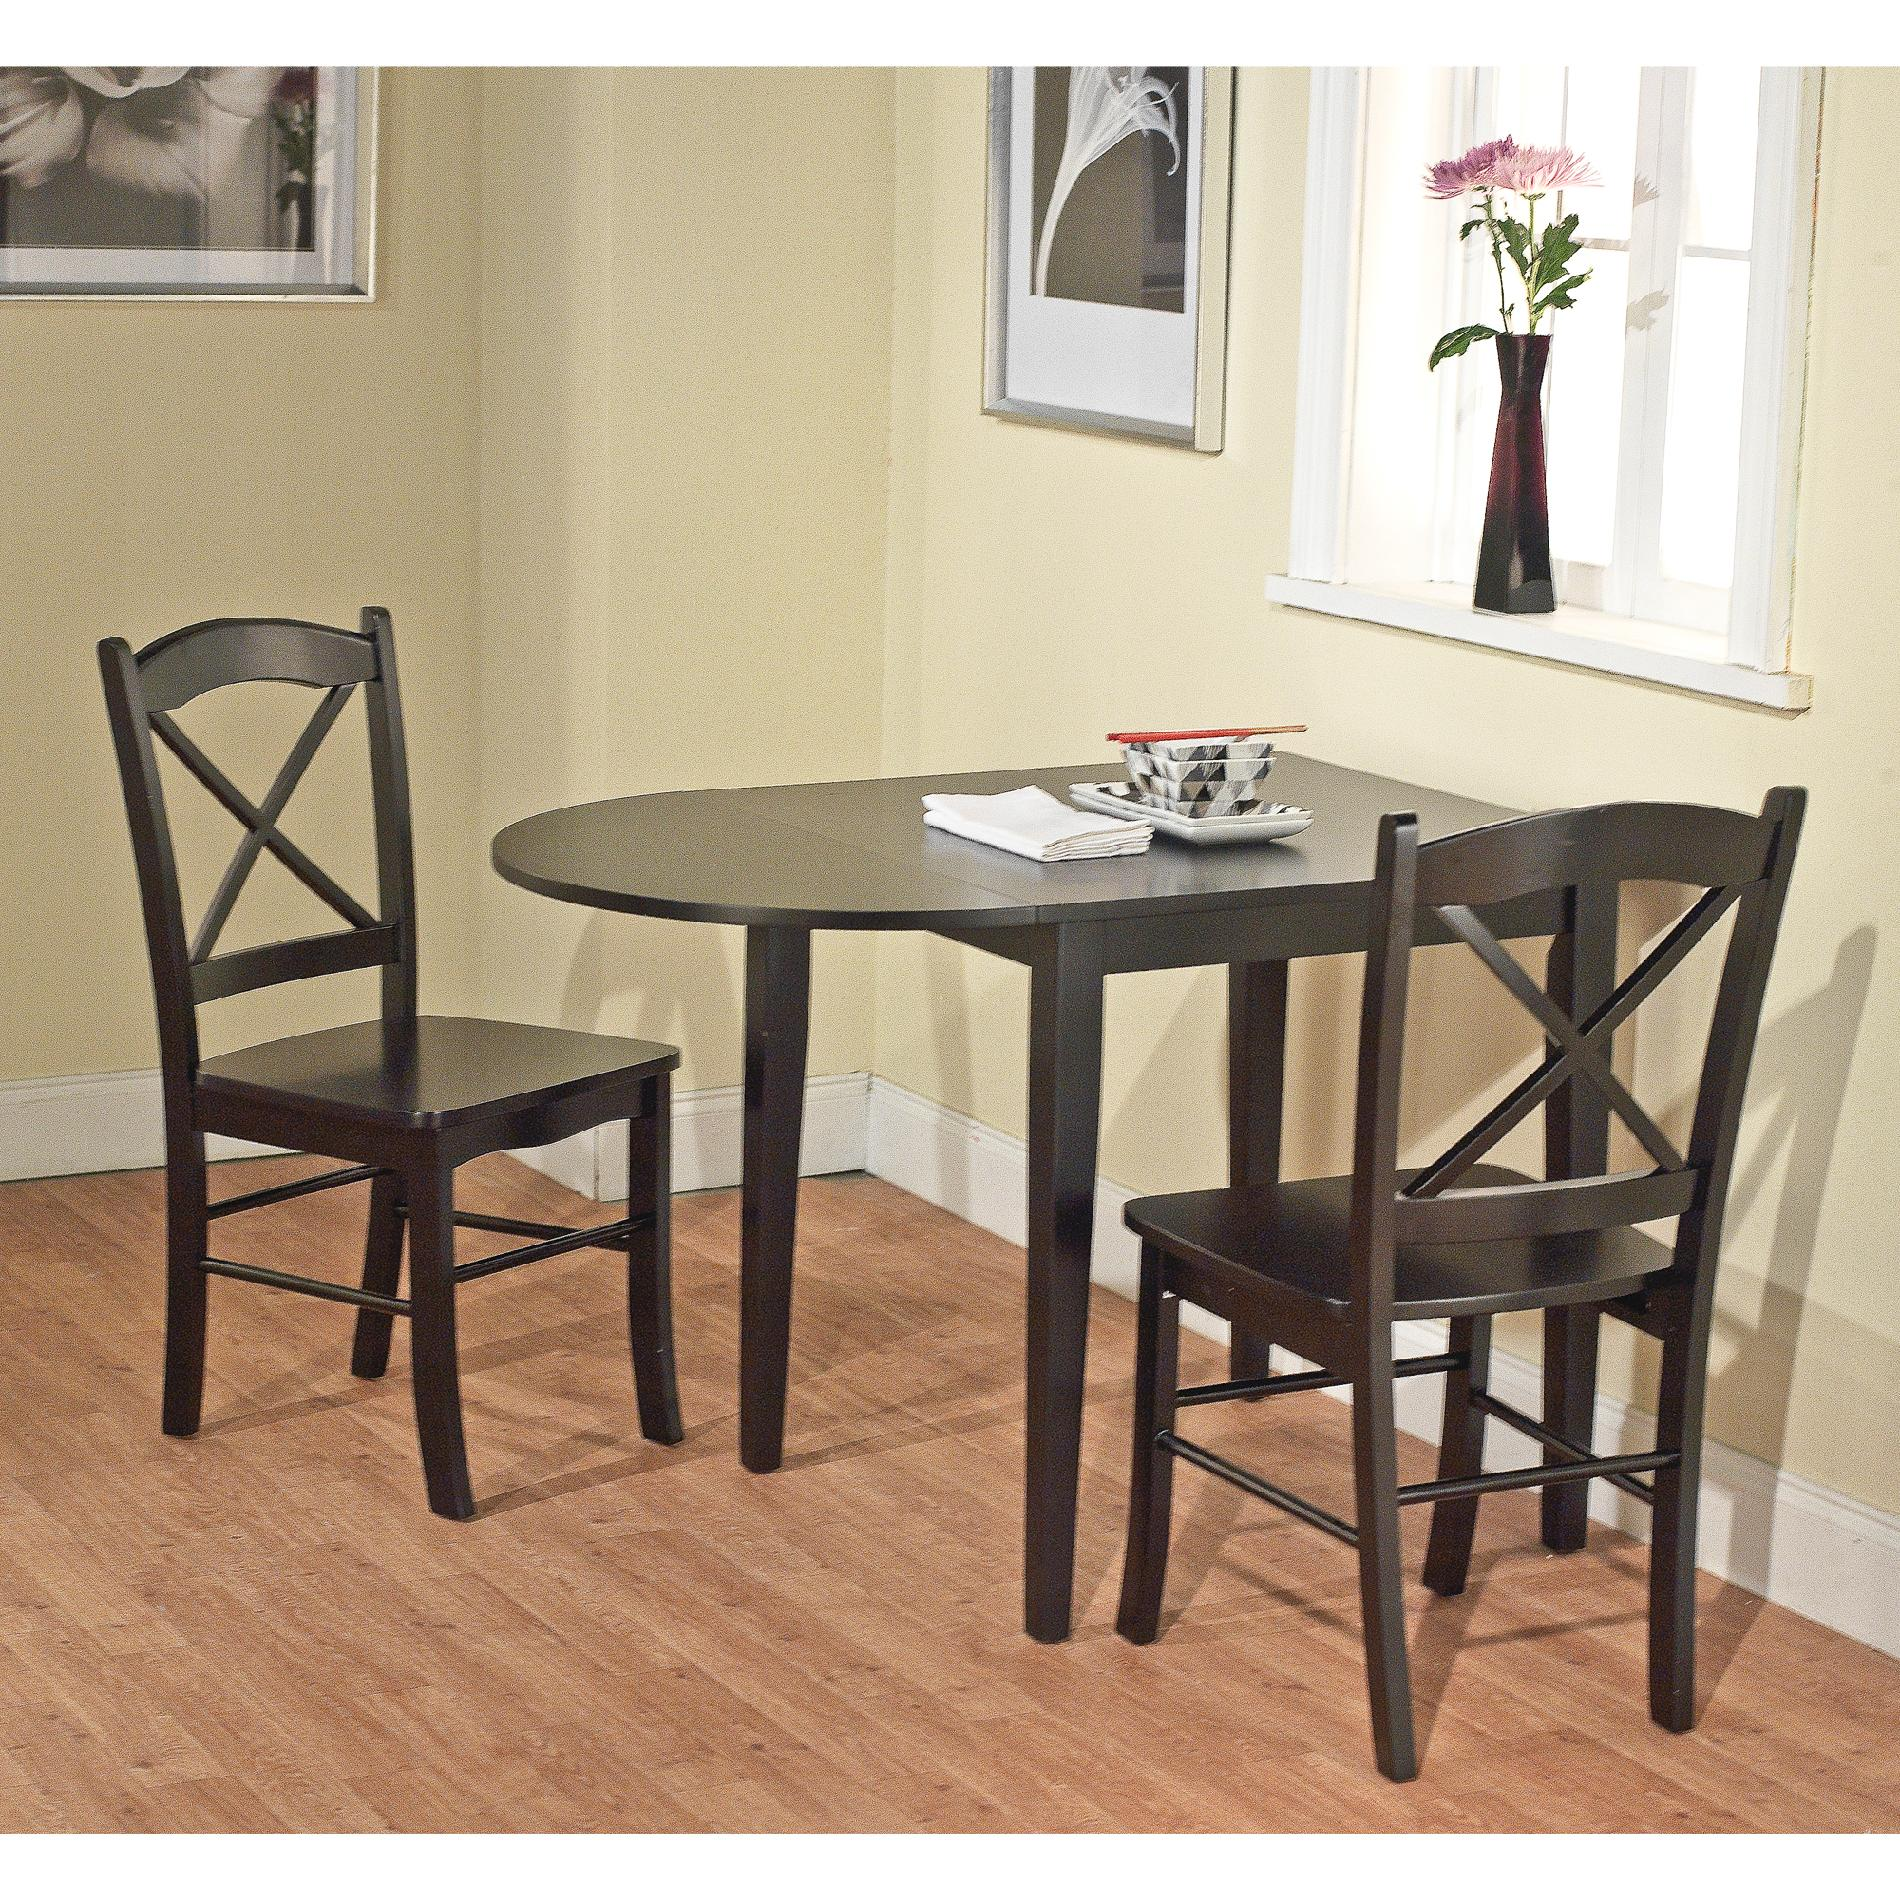 Small Drop Leaf Table With 2 Chairs 3pc Tiffany Drop Leaf Dining Set